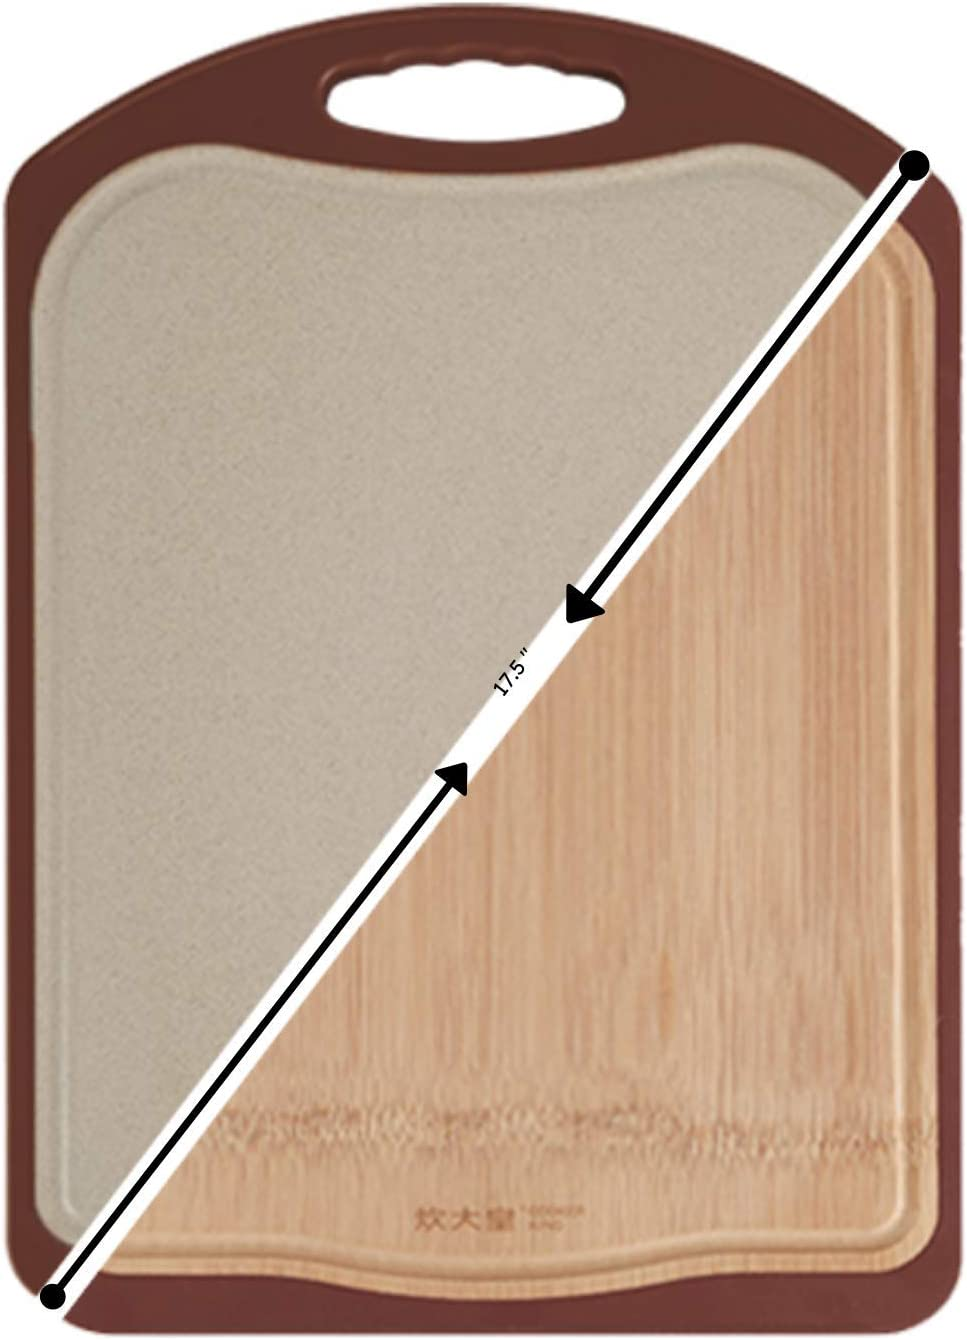 COOKER KING Double Sided Cutting Board - Bamboo Wood & Natural Wheat Fibers - Butcher Block With Handle & Juice Groove, Kitchen Chopping Board for Meat, Cheese, Vegetables, Large Chopping Block, 15 IN